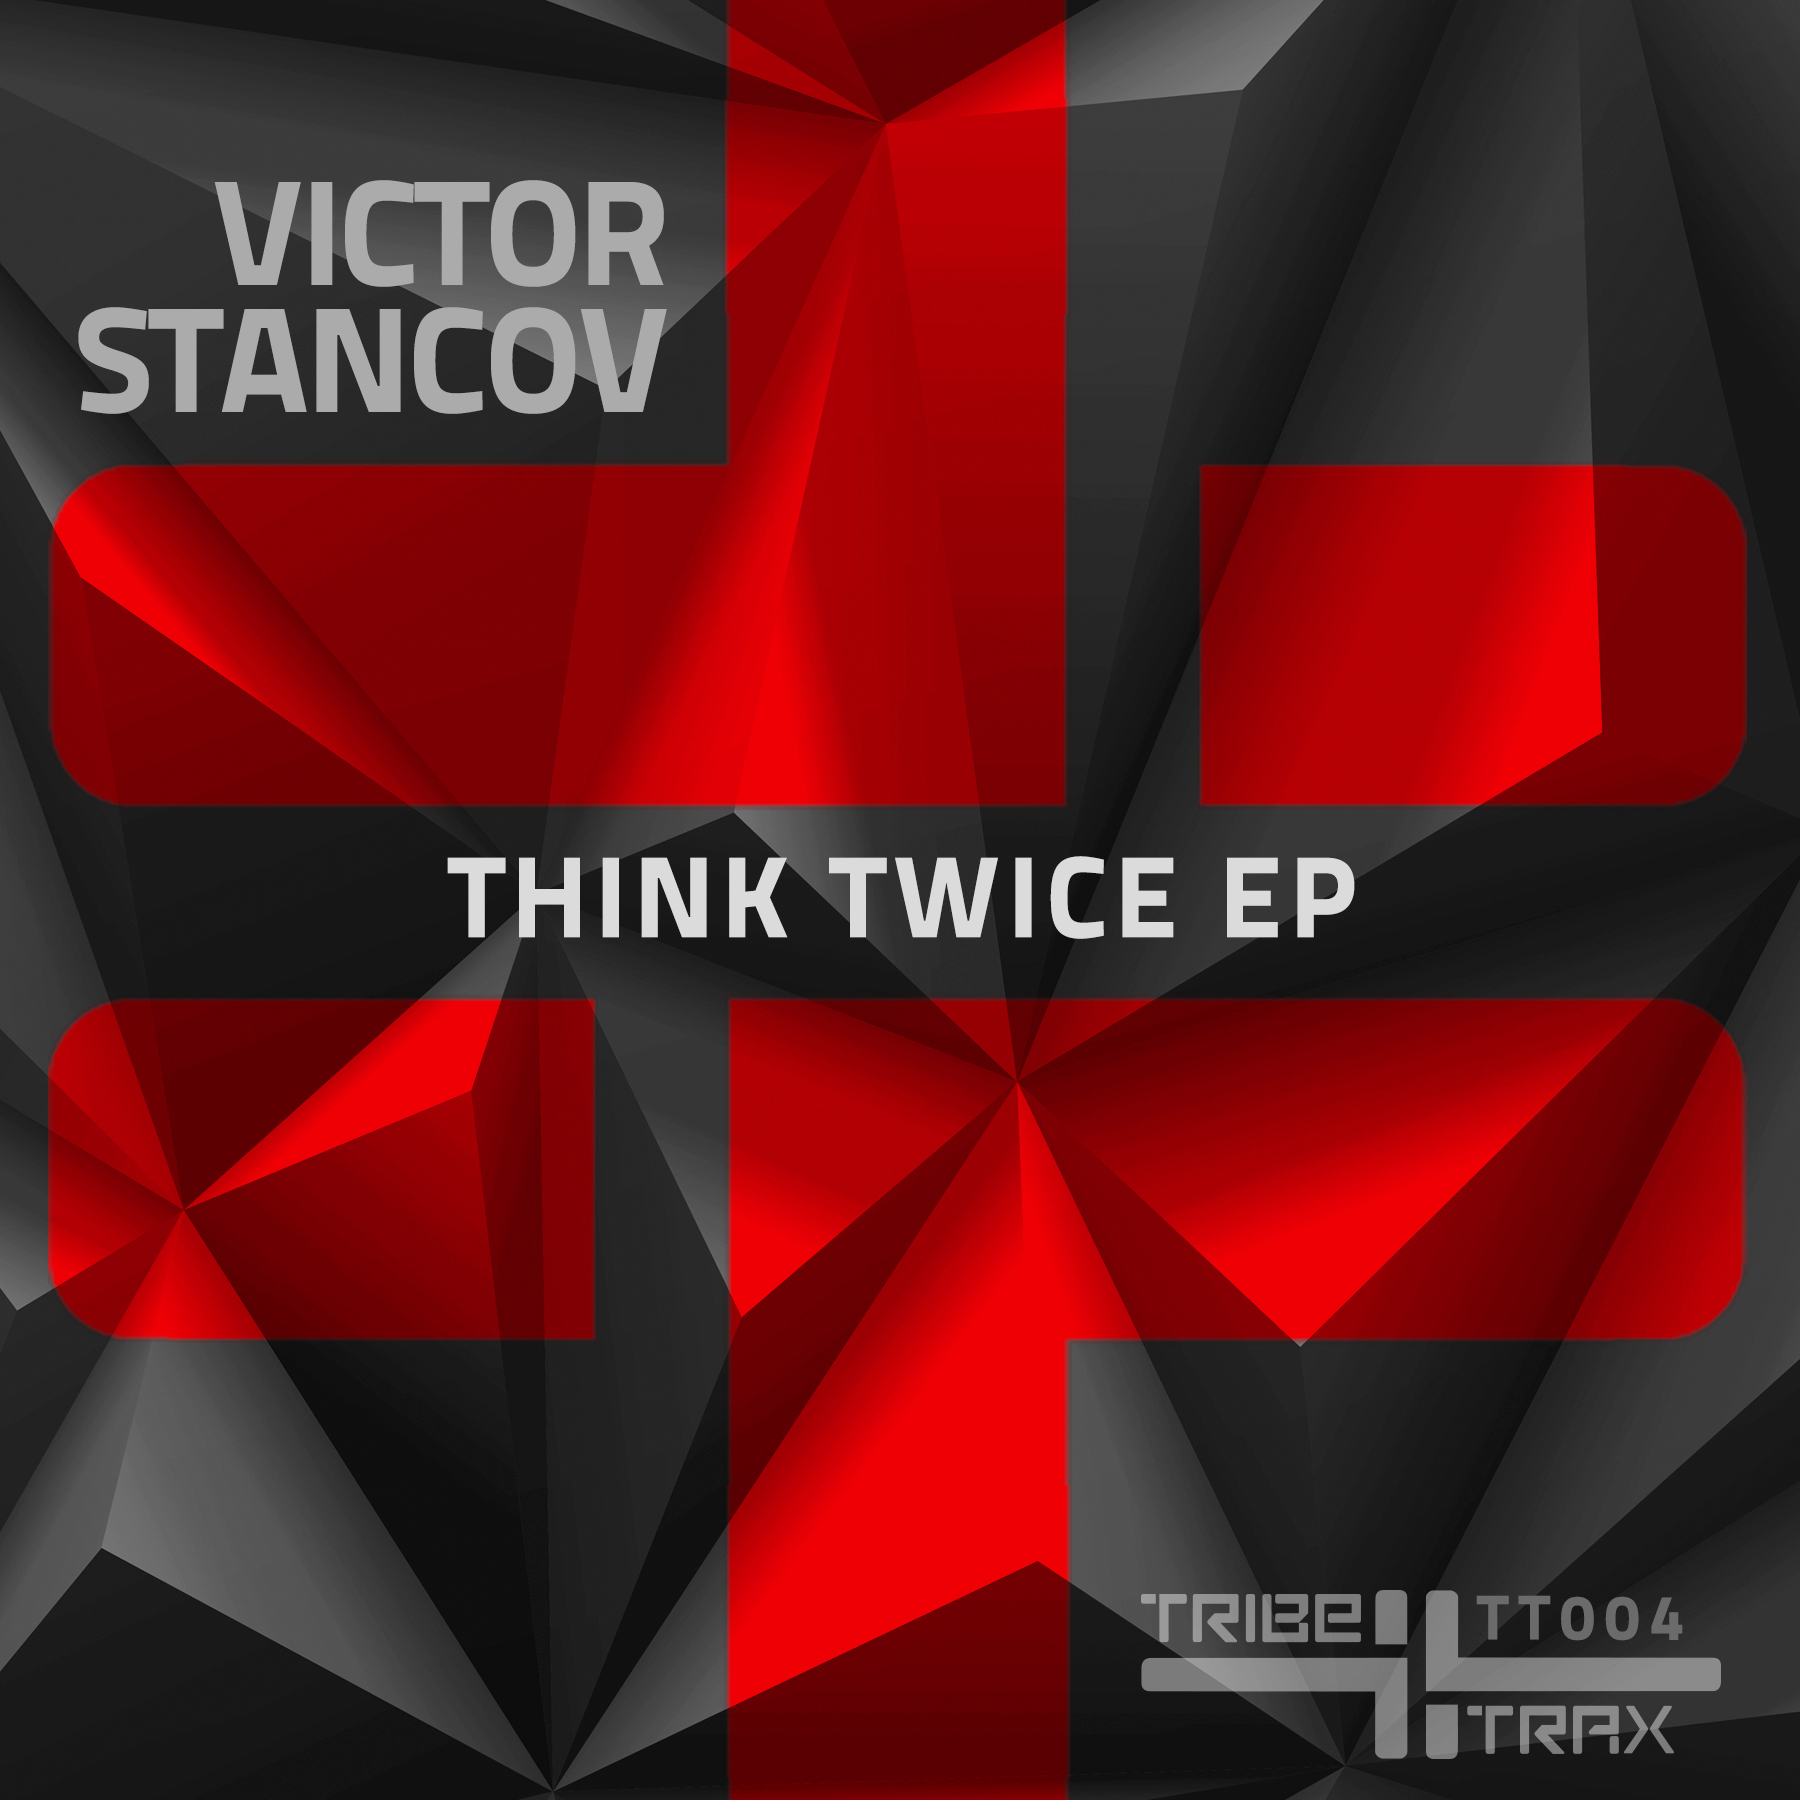 Think Twice EP Victor Stancov